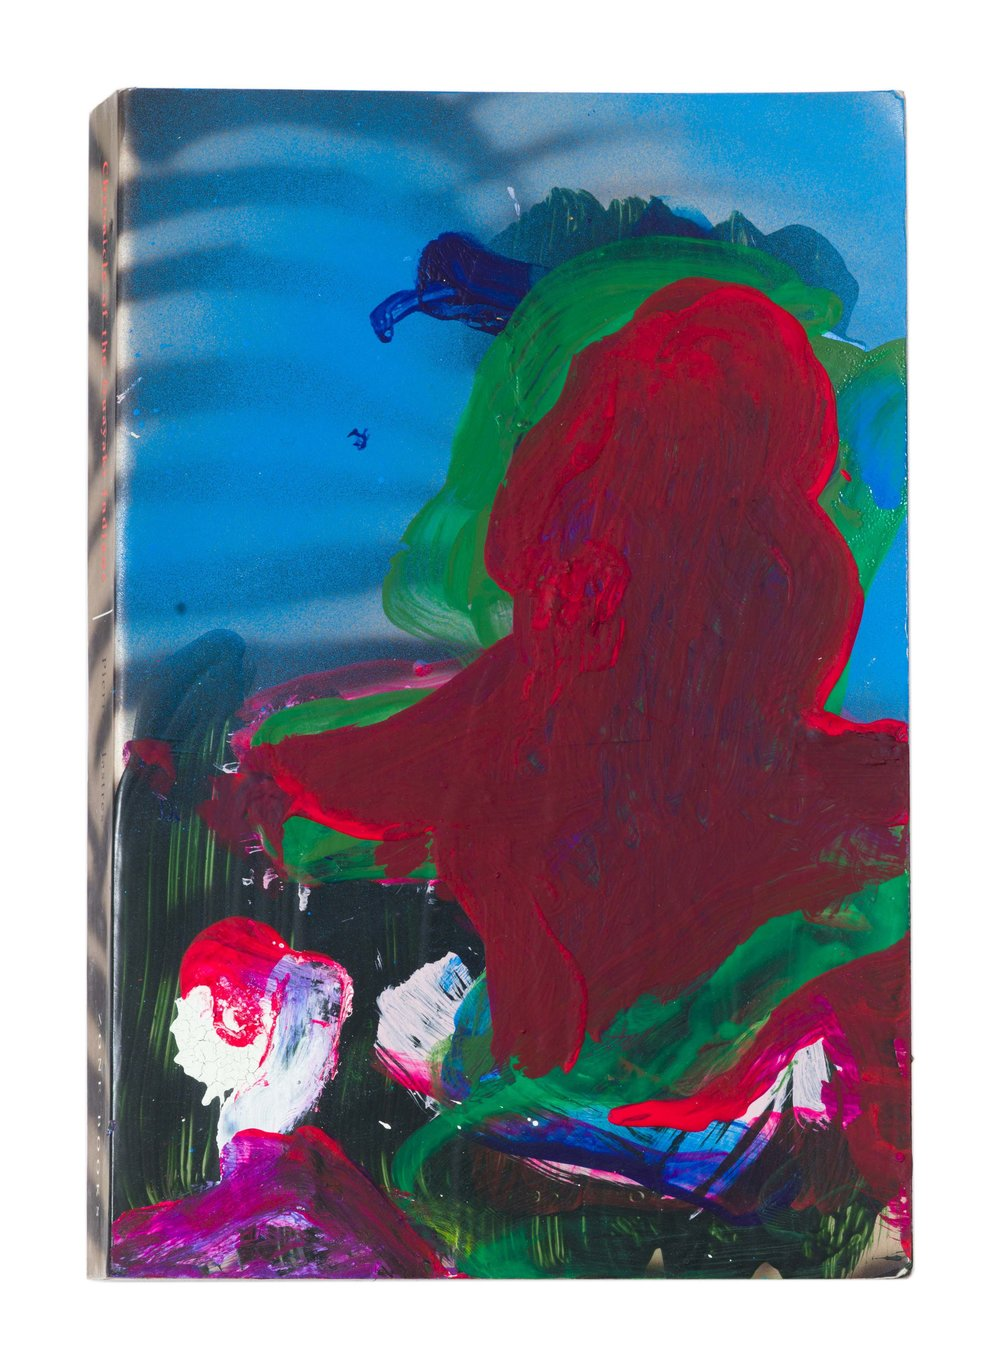 Drew Beattie and Ben Shepard  Chronicle of the Guayaki Indians  acrylic and spray paint on used book 2016 9 x 6 inches